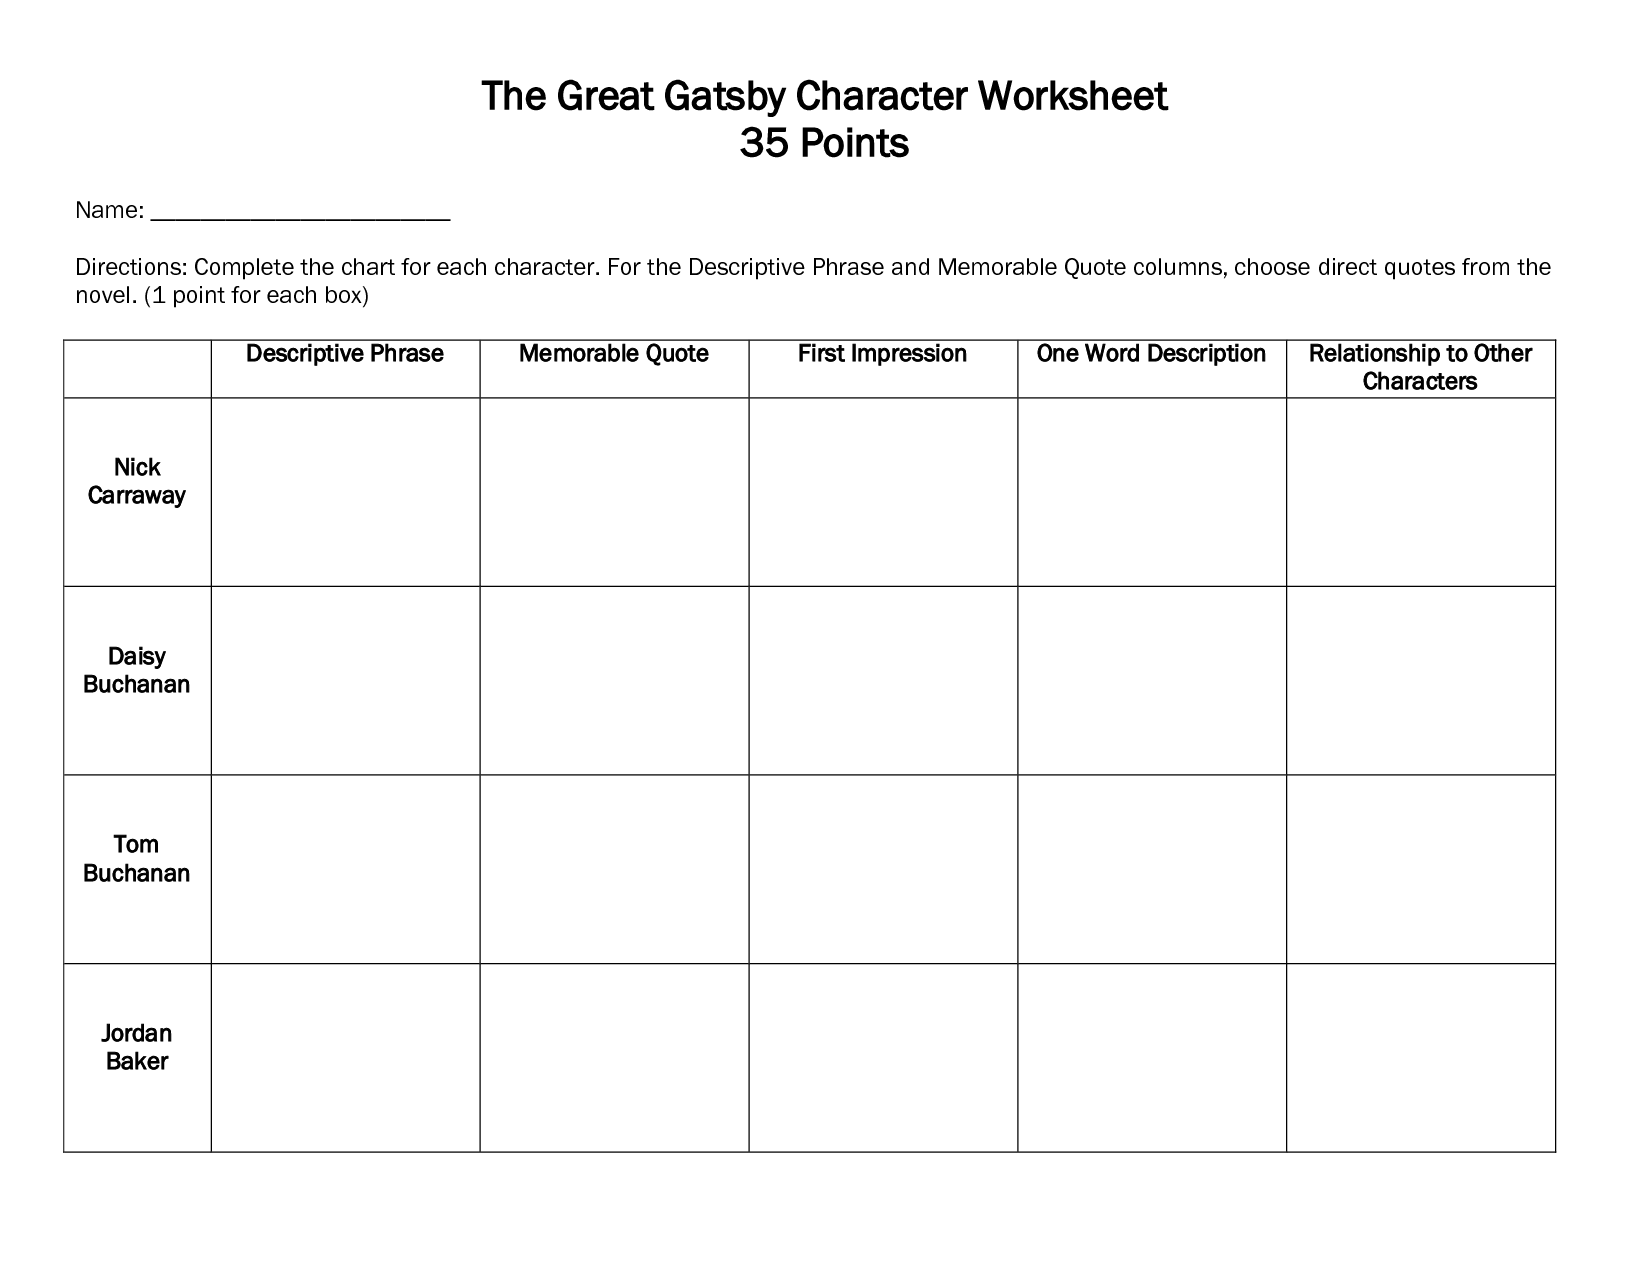 worksheet The Great Gatsby Worksheets worksheets for great gatsby the character worksheet 35 points name directions